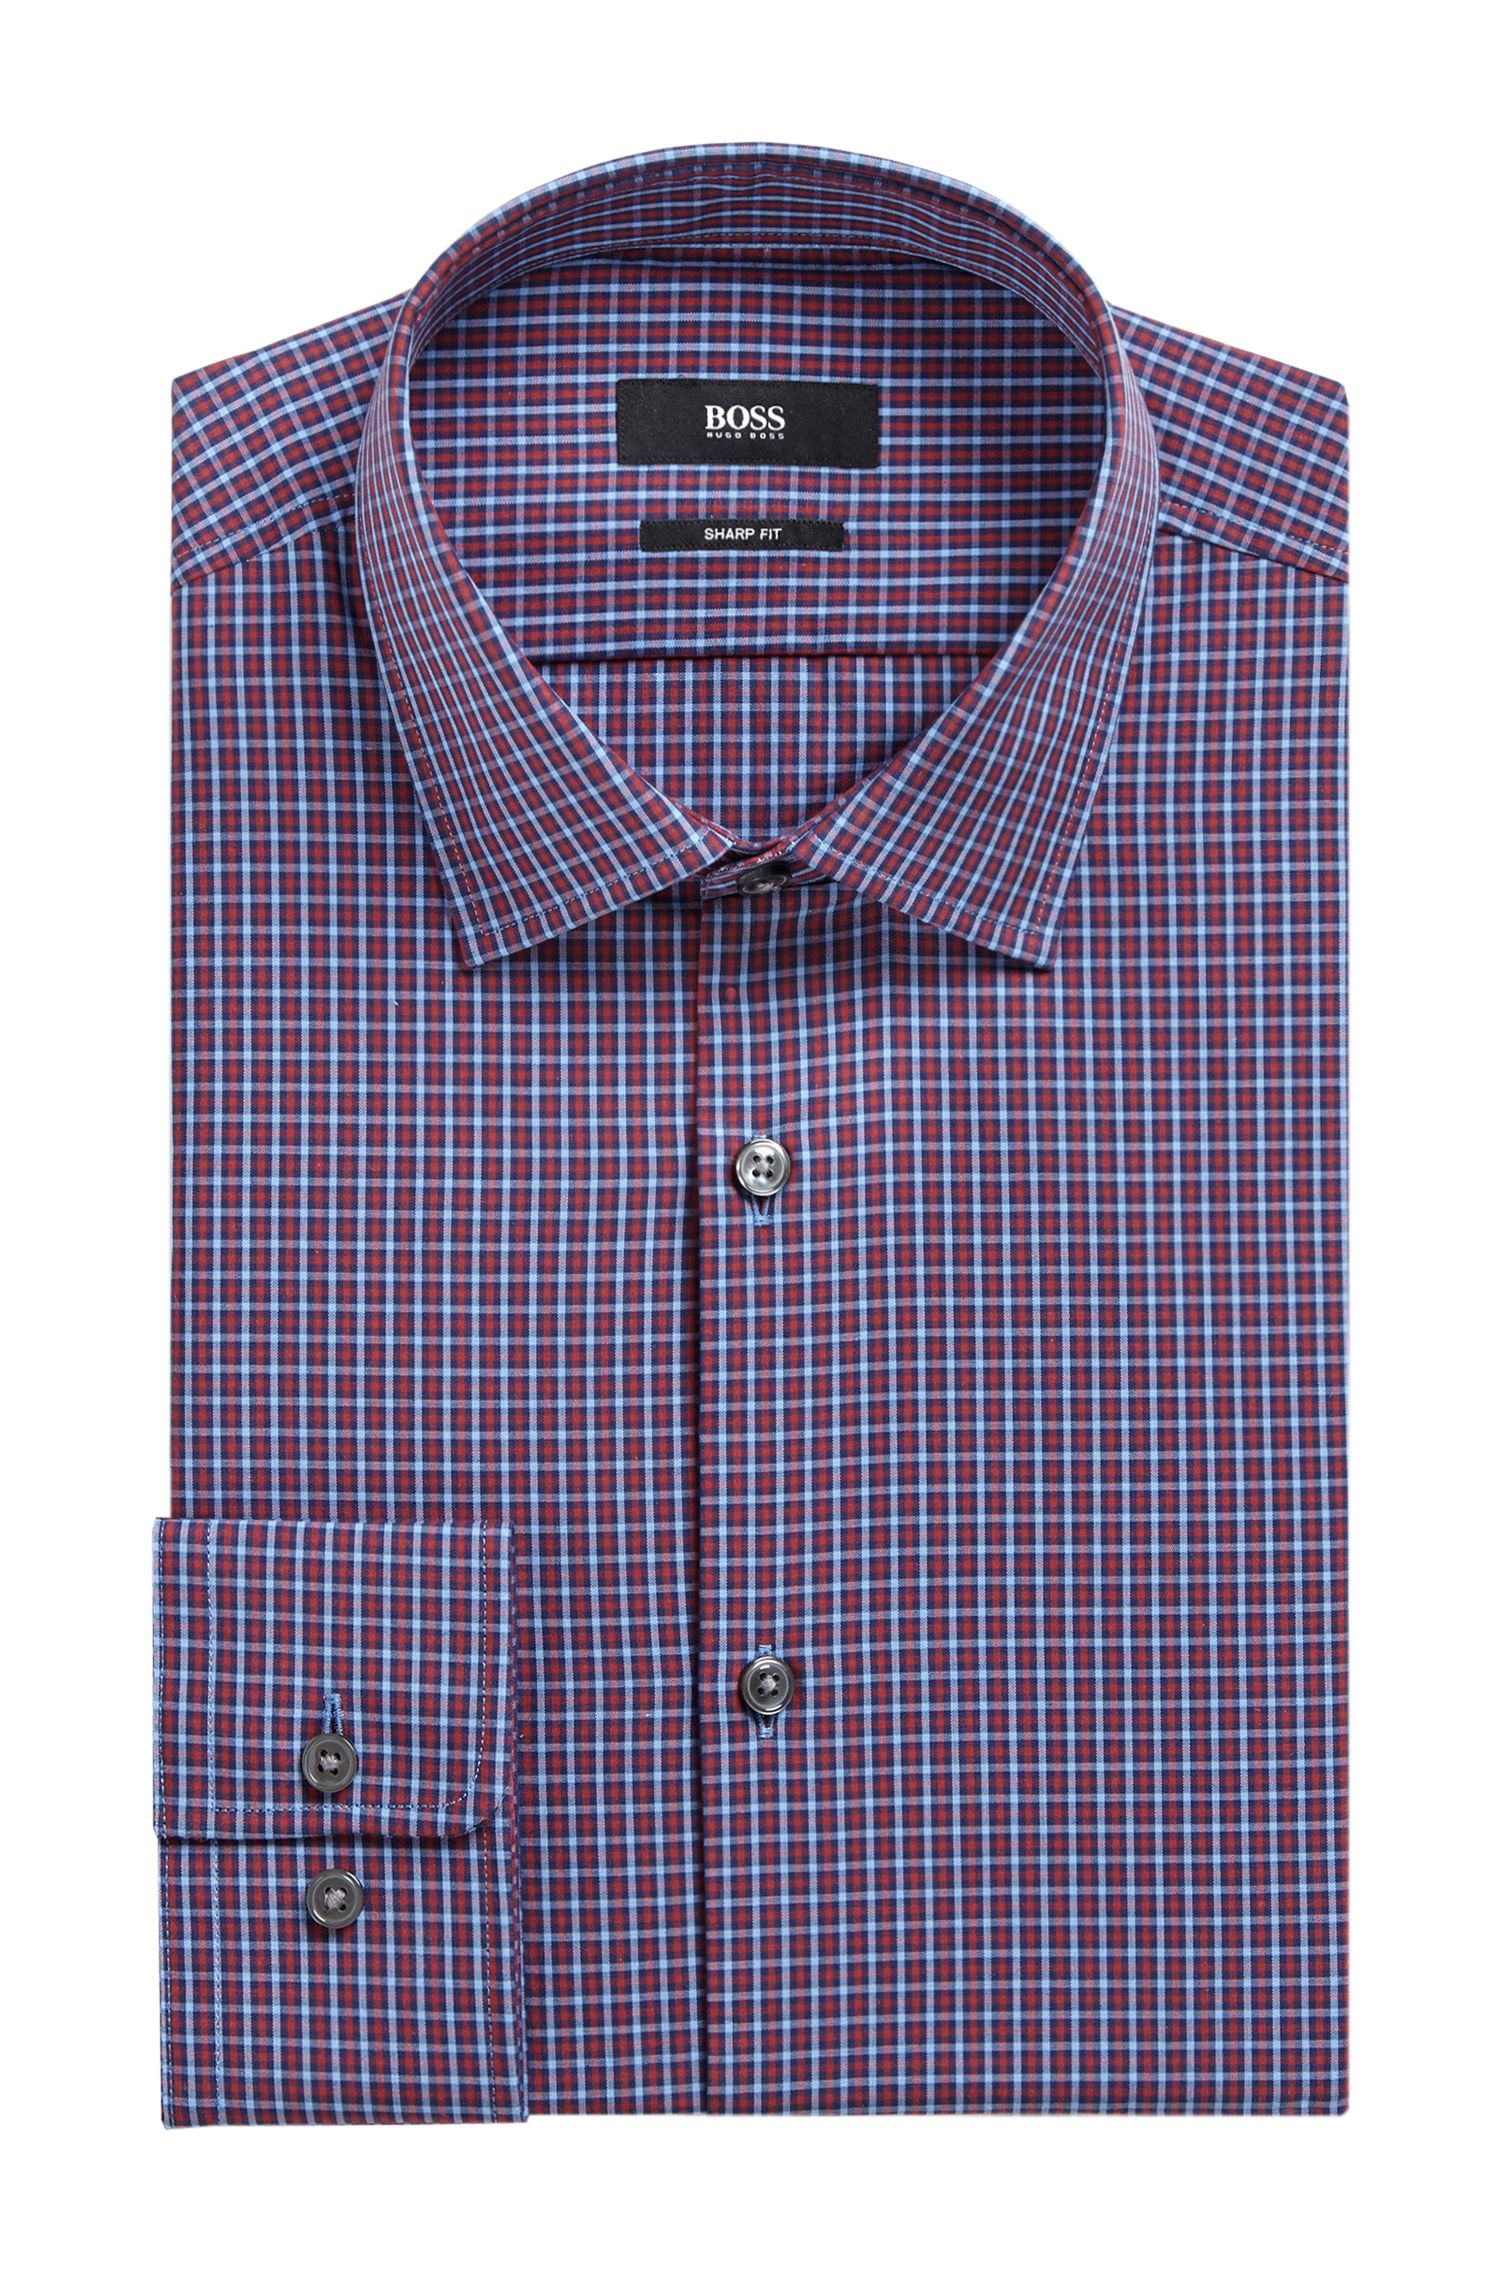 Plaid Cotton Dress Shirt, Sharp Fit | Marley US